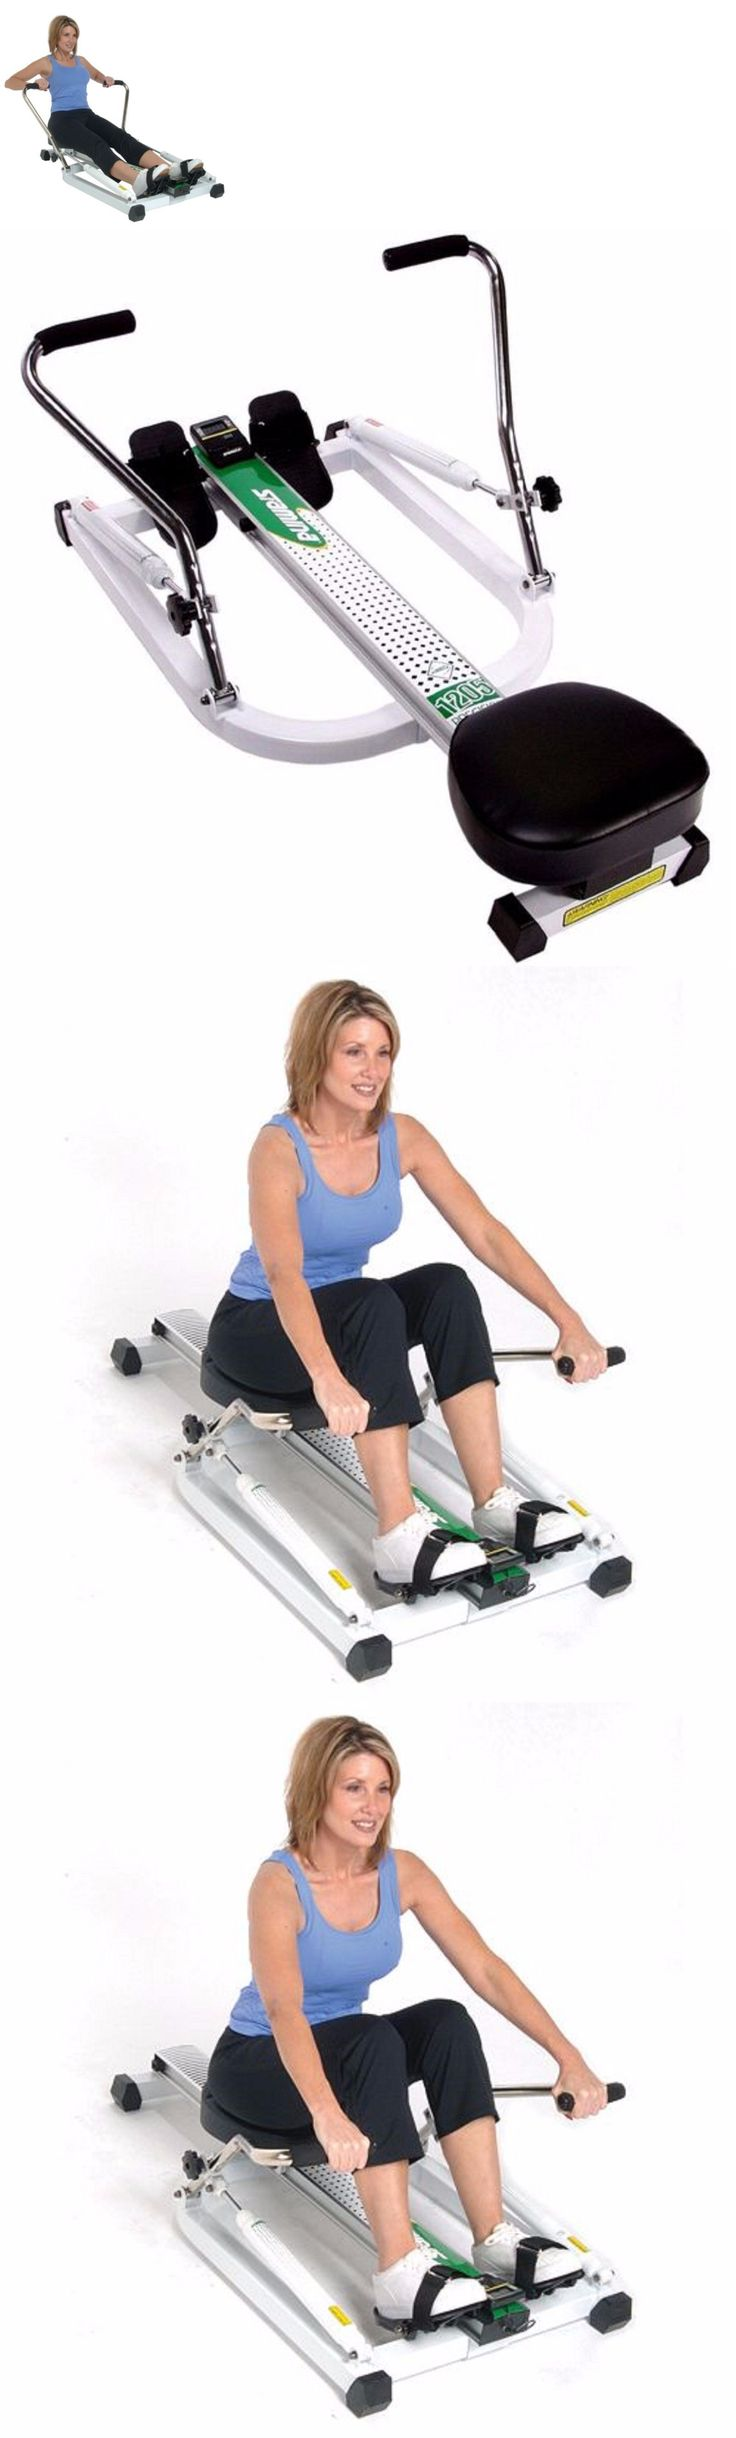 Rowing Machines 28060: Rowing Machine Rower Exercise ...